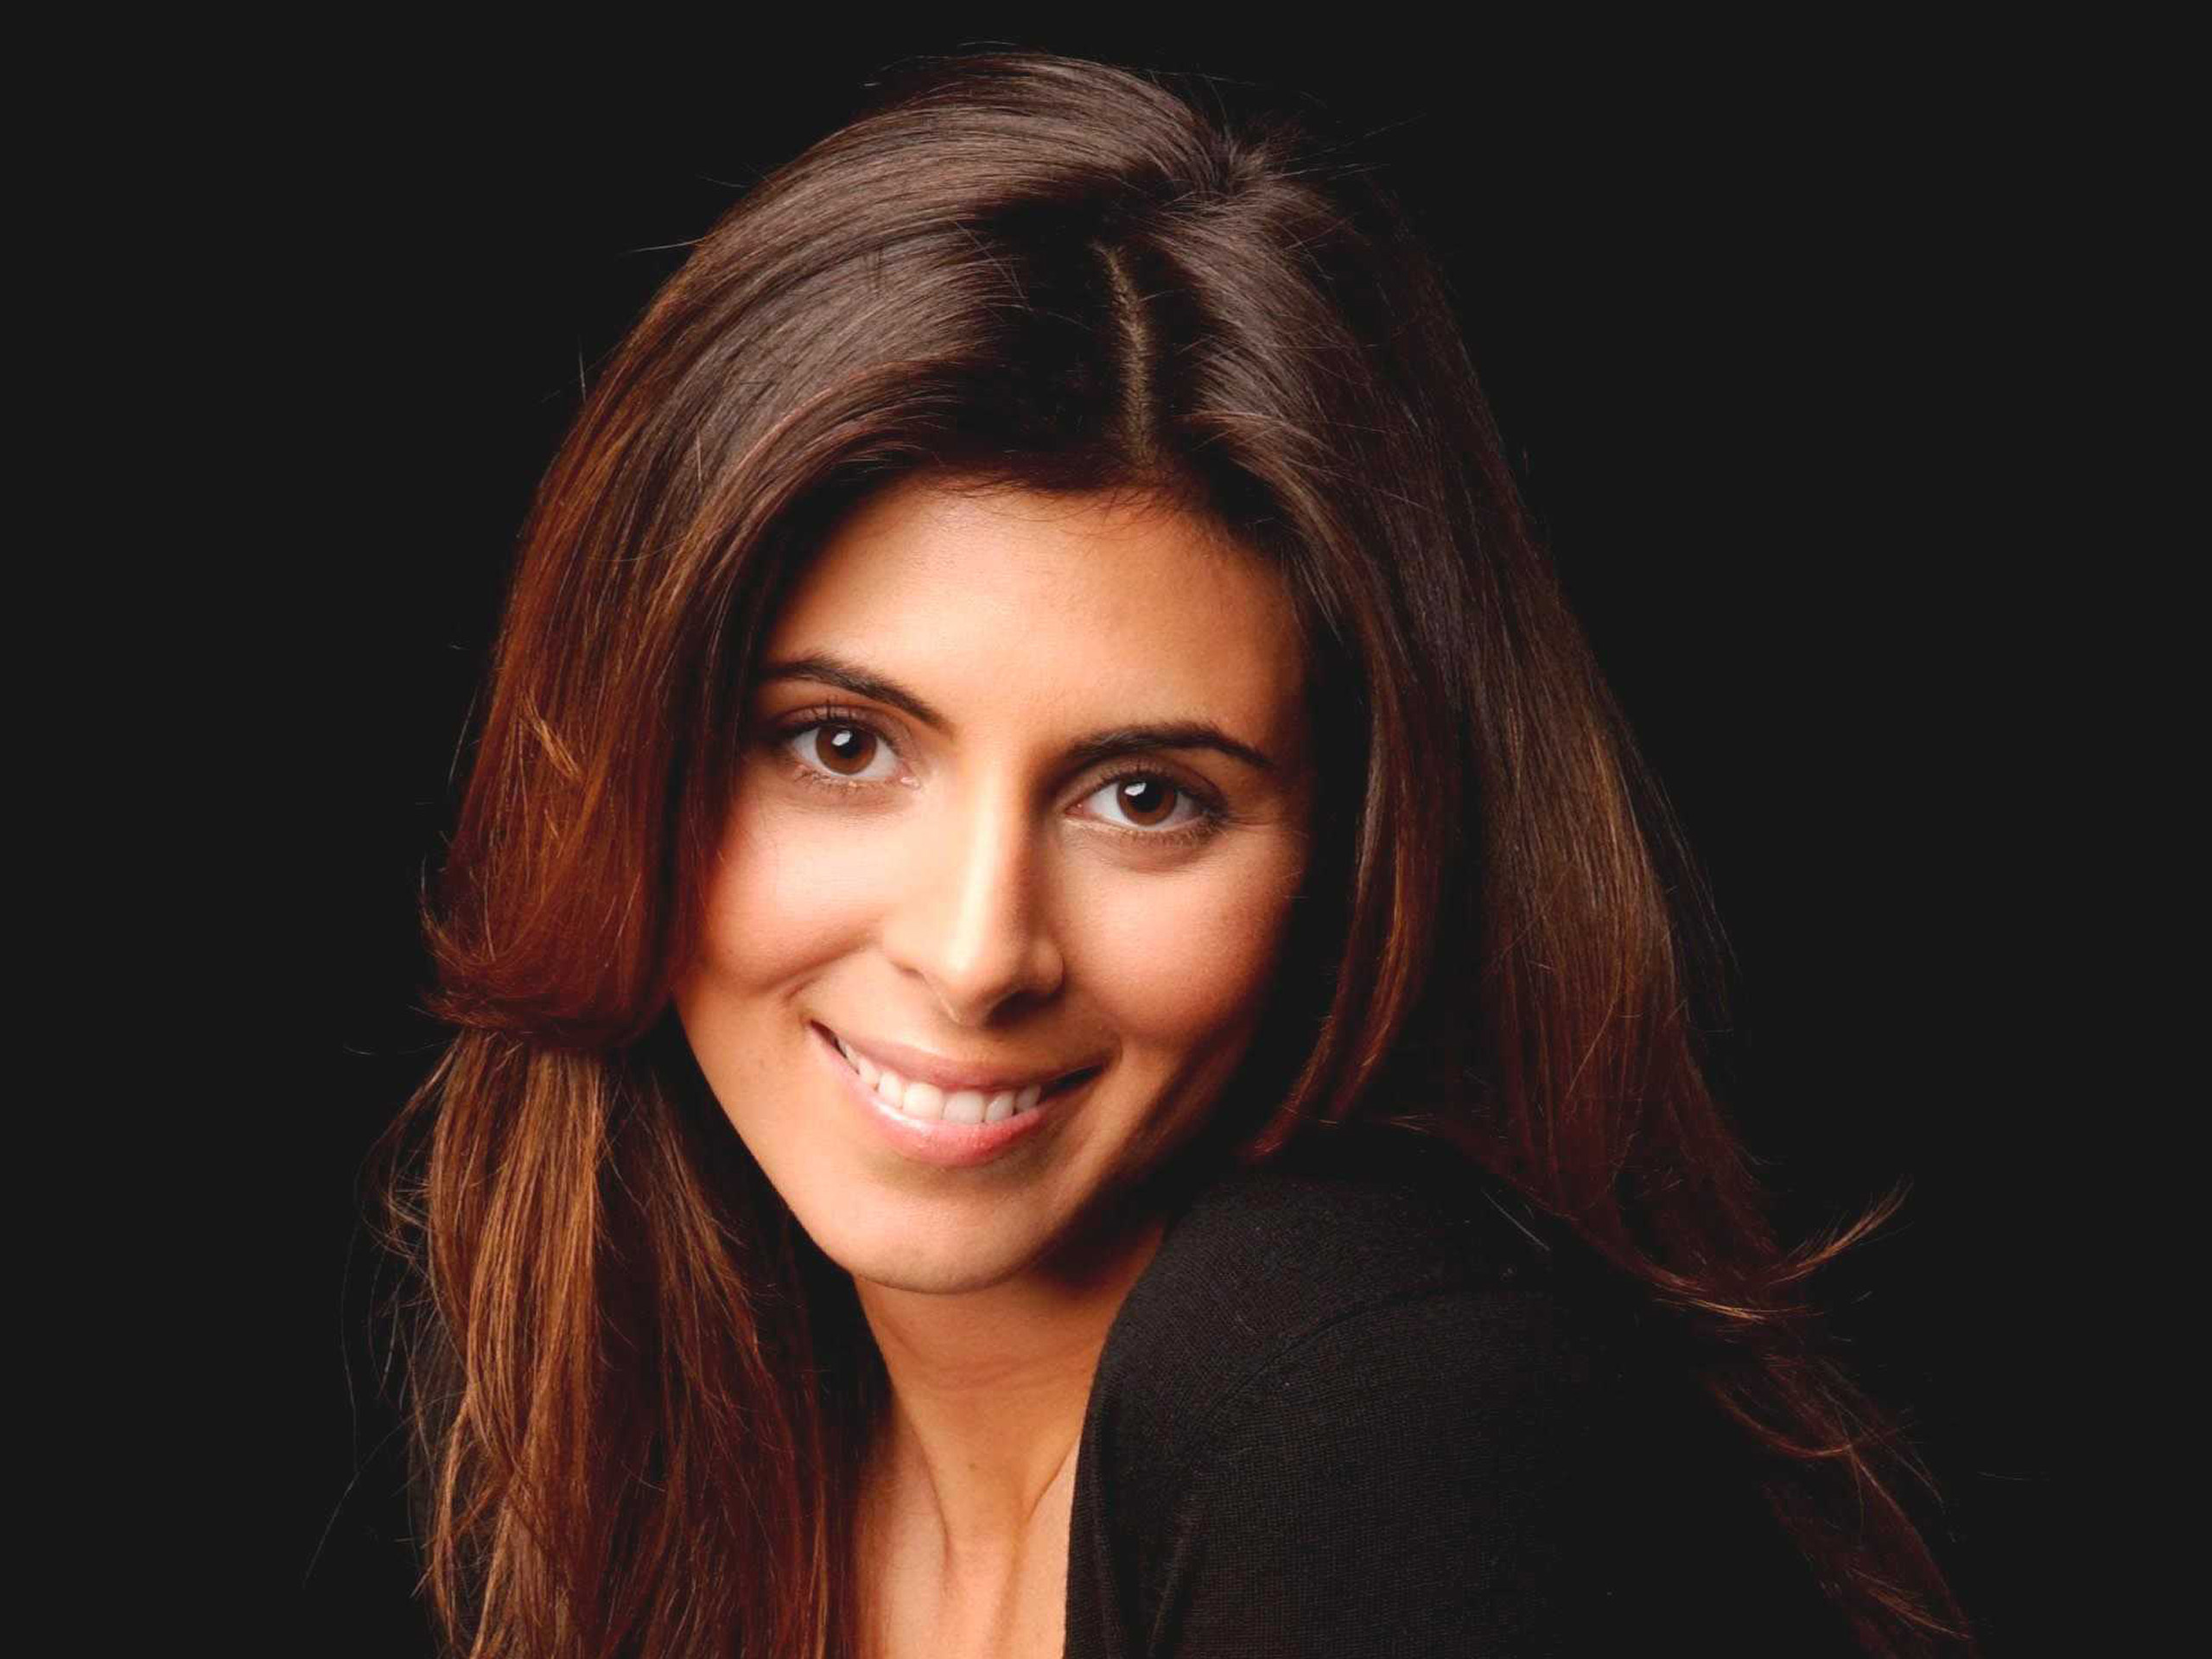 The 36-year old daughter of father (?) and mother(?), 164 cm tall Jamie-Lynn Sigler in 2017 photo